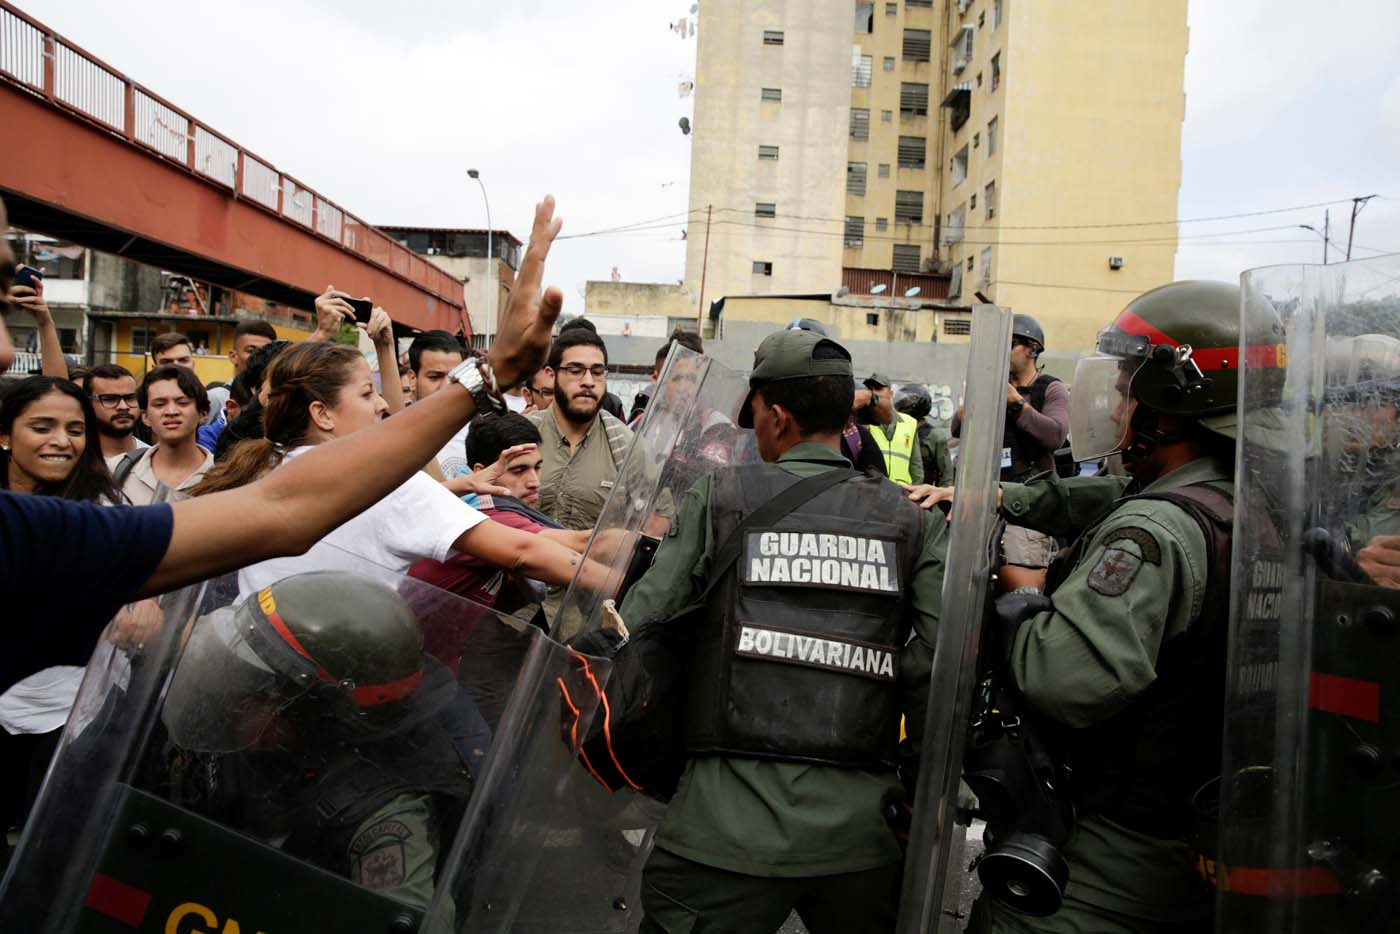 Opposition supporters clash with Venezuela's National Guards during a protest against Venezuelan President Nicolas Maduro's government outside the Supreme Court of Justice (TSJ) in Caracas, Venezuela March 31, 2017. REUTERS/Marco Bello